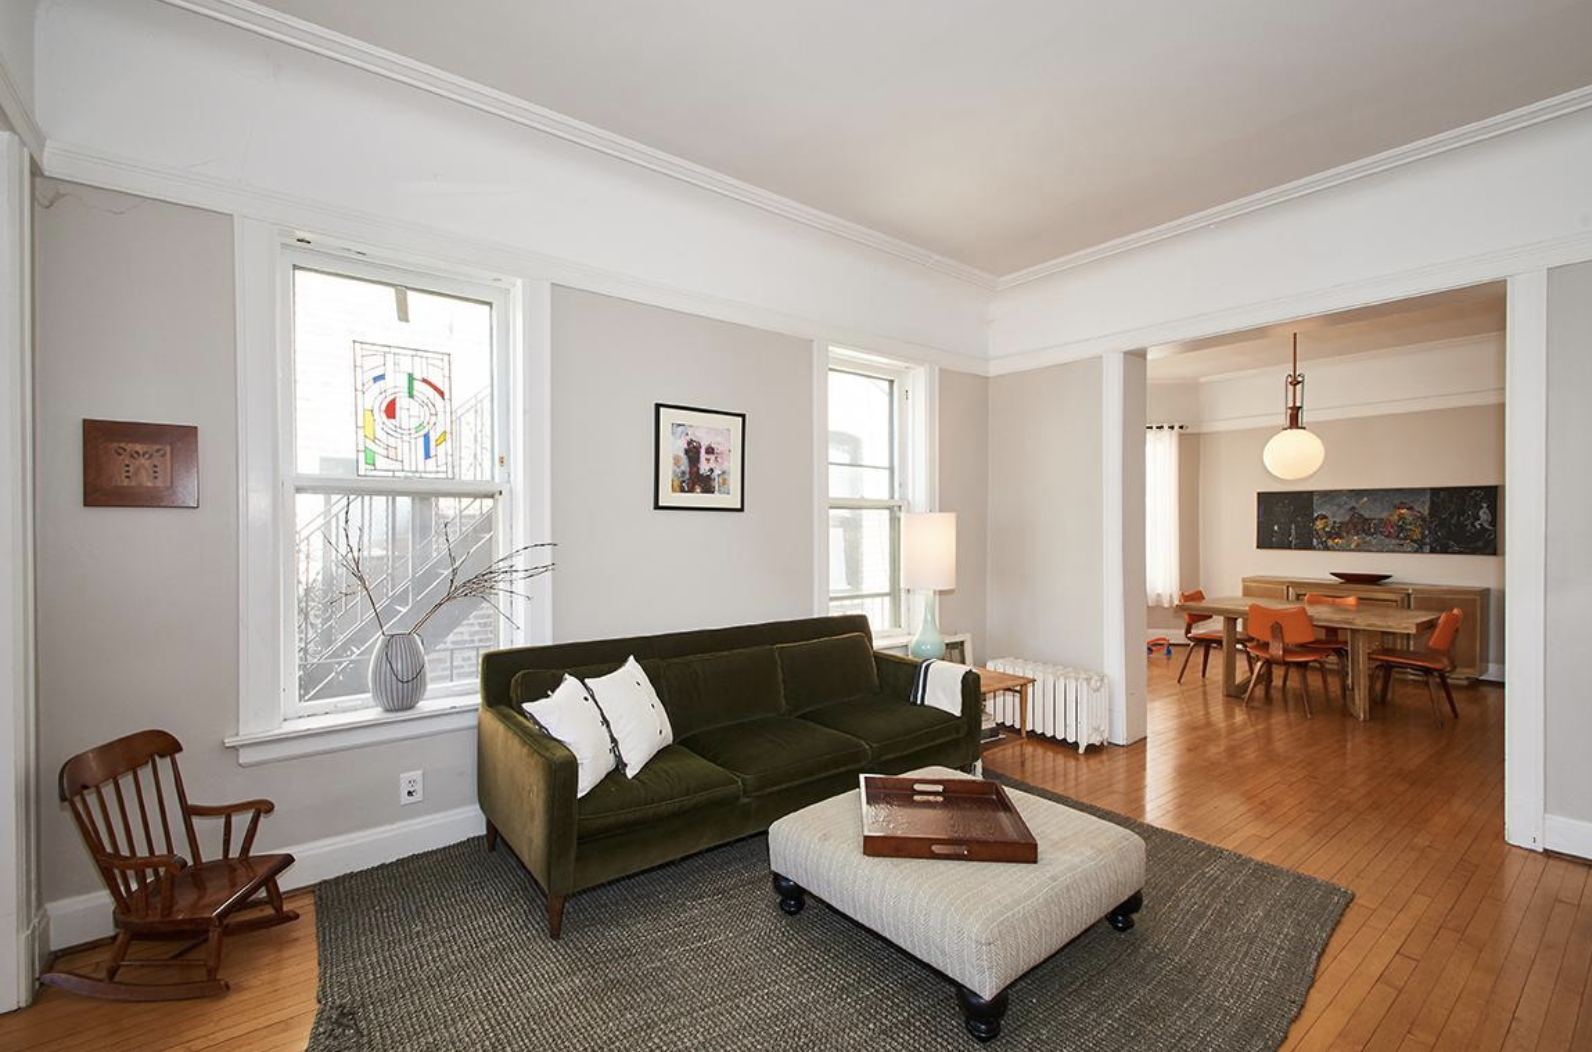 This 3 Bedroom Apartment For Rent In Chicago Has Lots Of Living Space High Ceilings And Wonderfu Vintage Apartment Vintage Apartment Decor Apartments For Rent